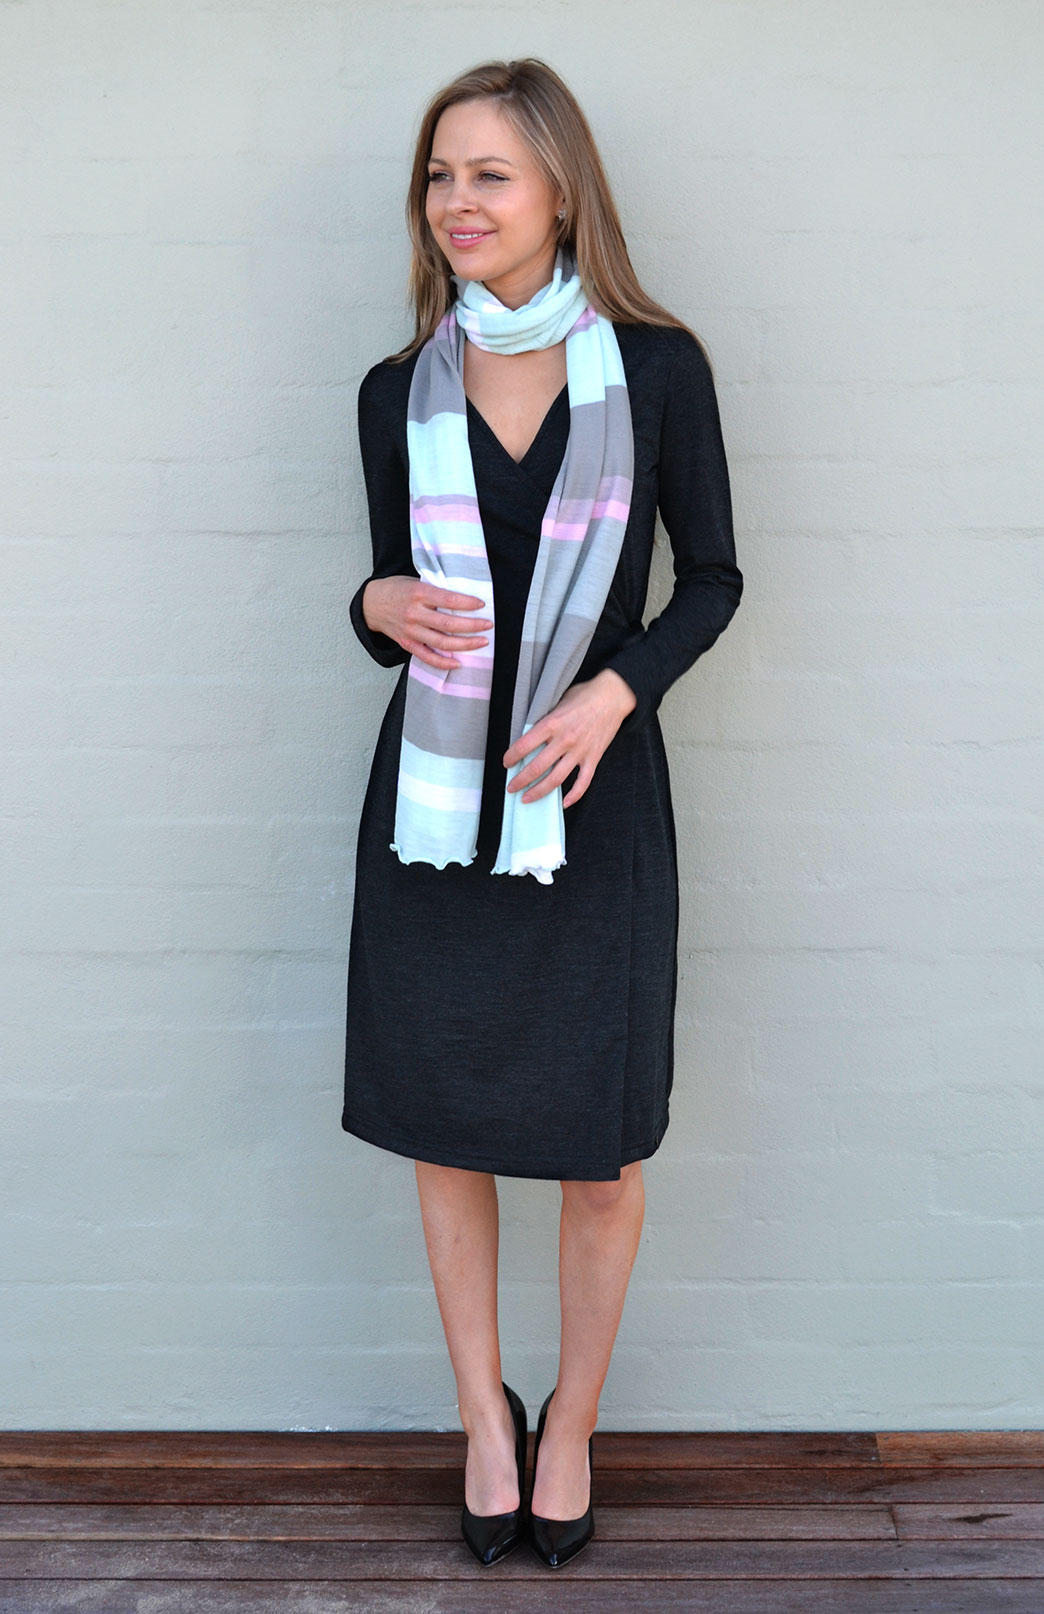 Wrap Dress - Long Sleeved - Women's Dark Charcoal Grey Merino Wool Long Sleeved Wrap Dress with adjustable ties - Smitten Merino Tasmania Australia